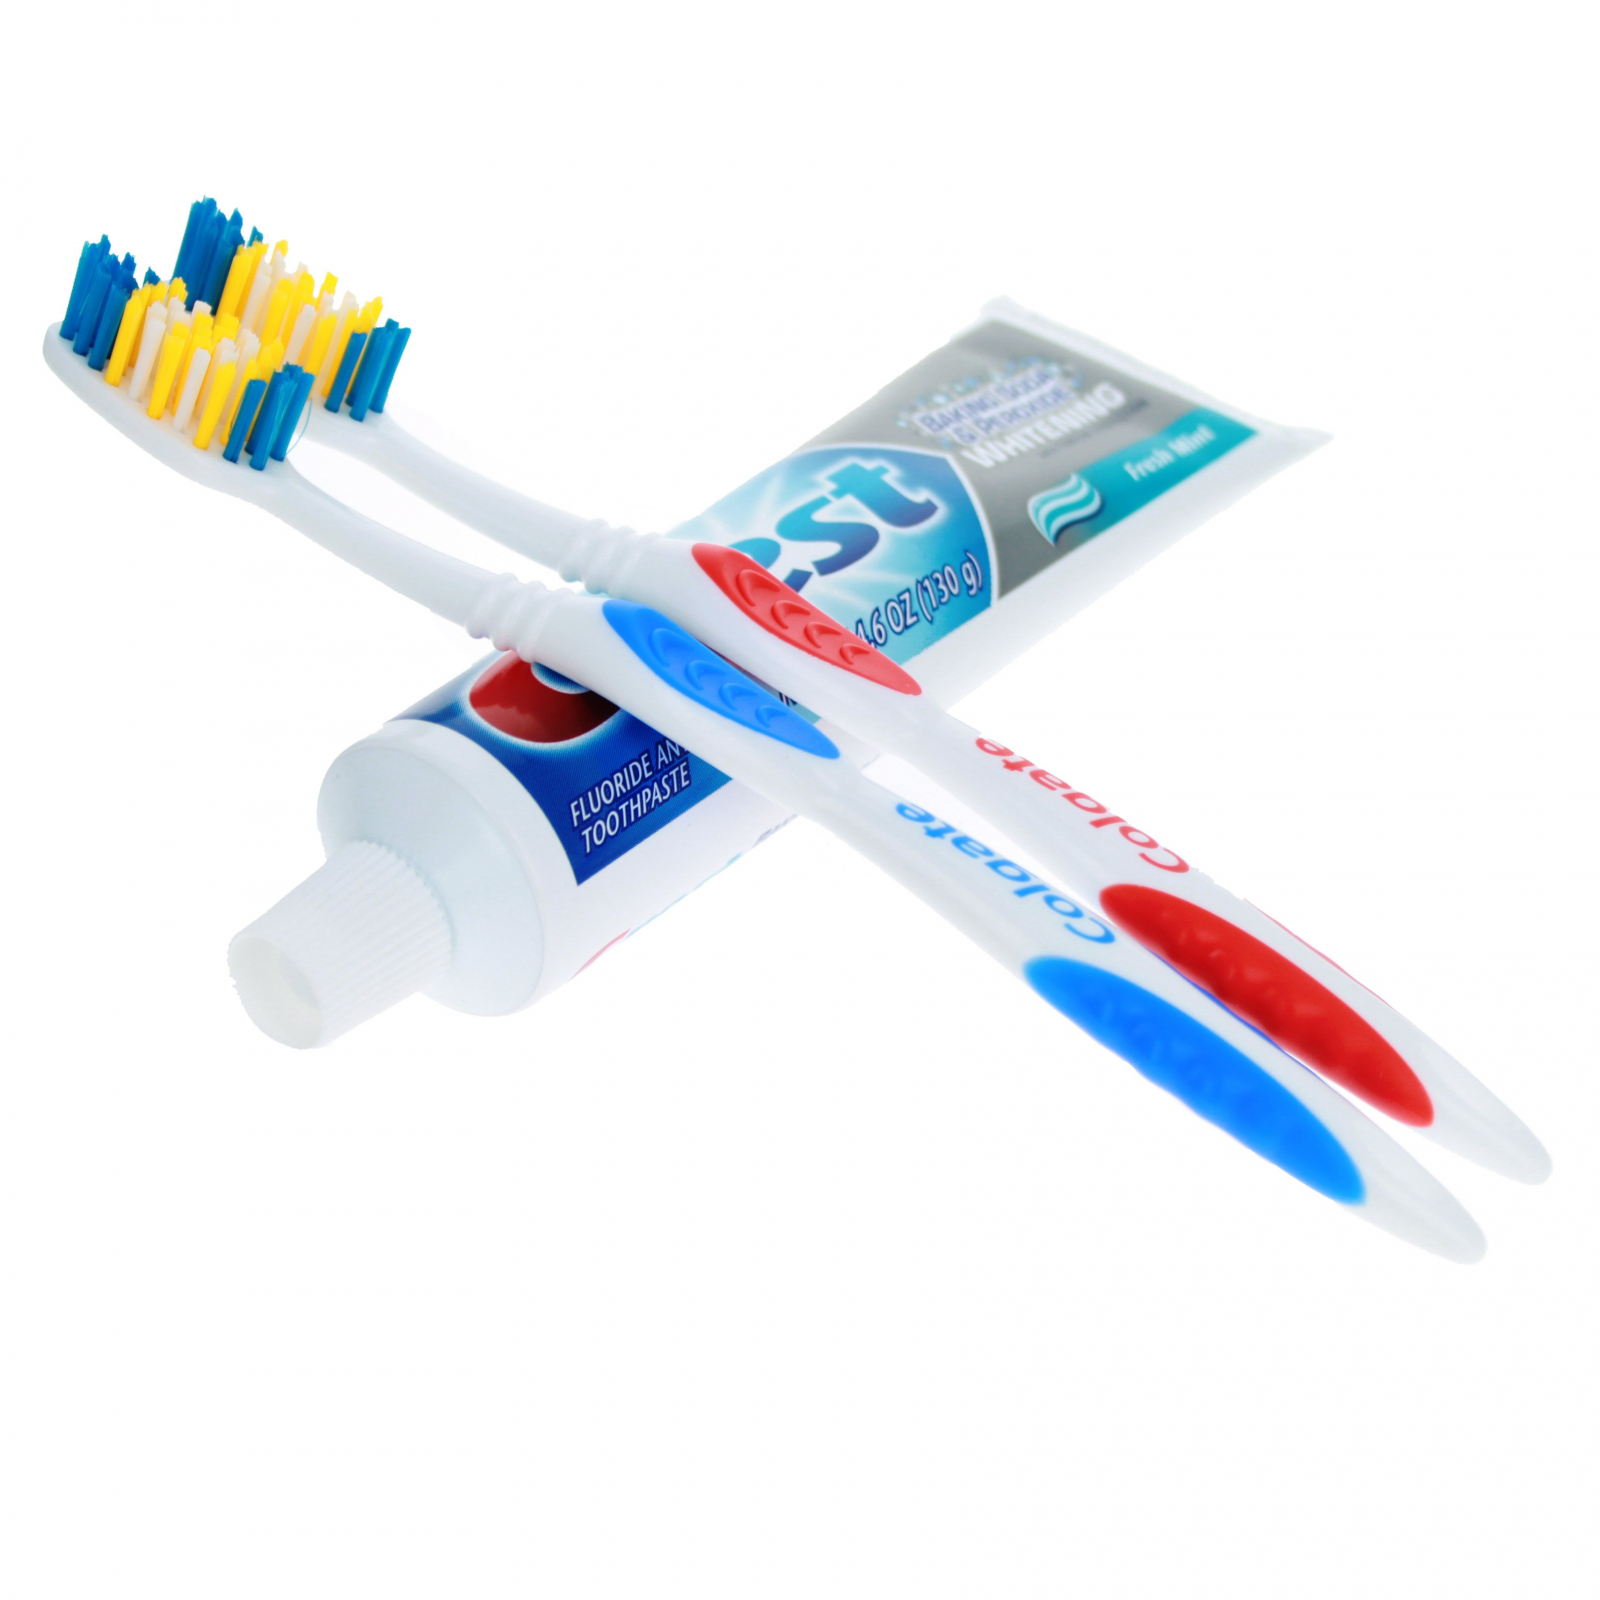 Home Essentials Oral Care Set Crest Toothpaste Toothbrushes